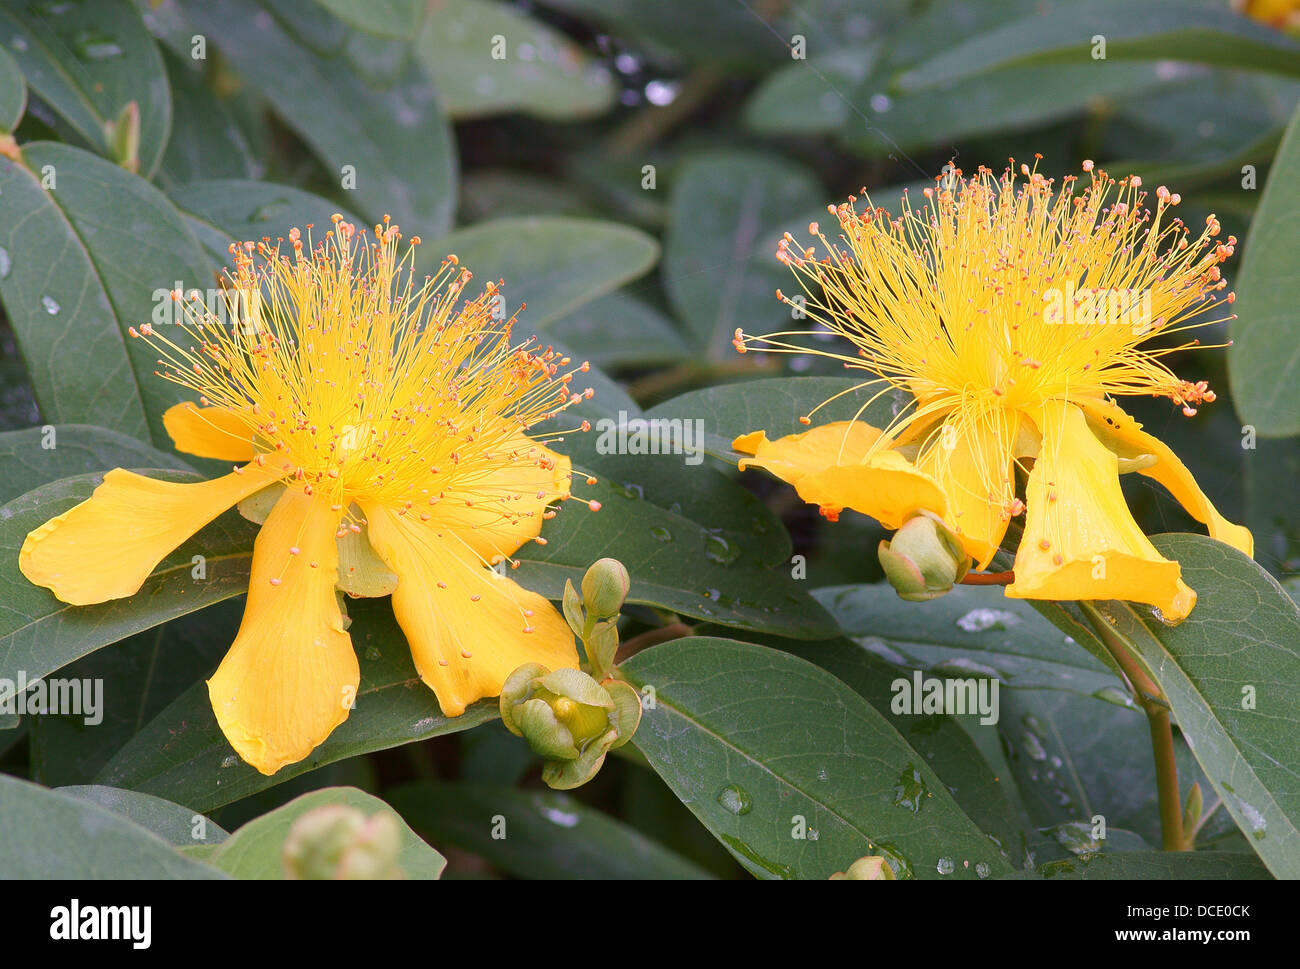 Rose of sharon stock photos rose of sharon stock images alamy yellow flowers of hypericum calycinum rose von sharon stock image mightylinksfo